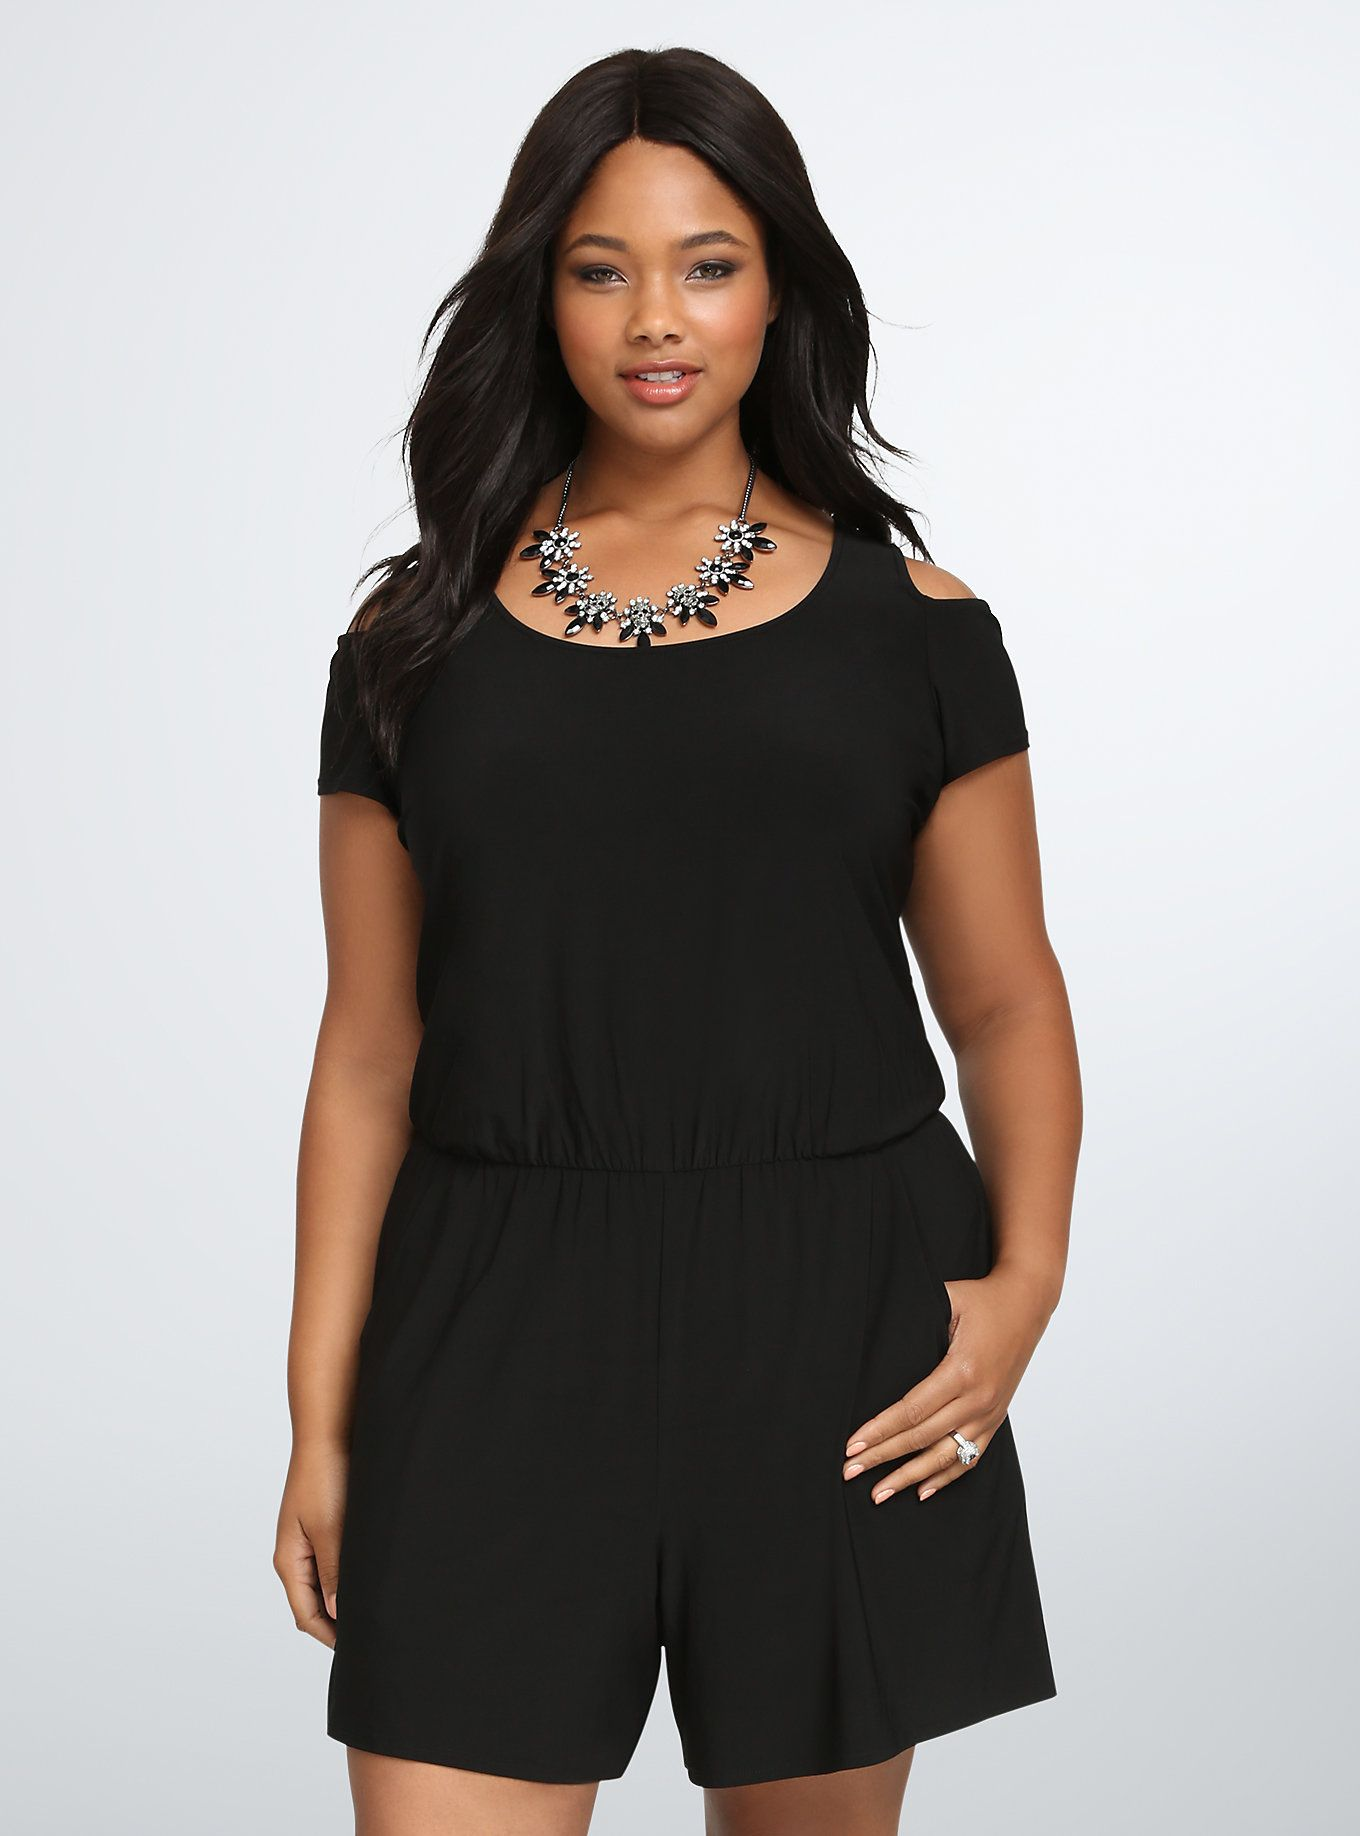 20f4213c3b4b jumper shorts outfit plus size - Google Search